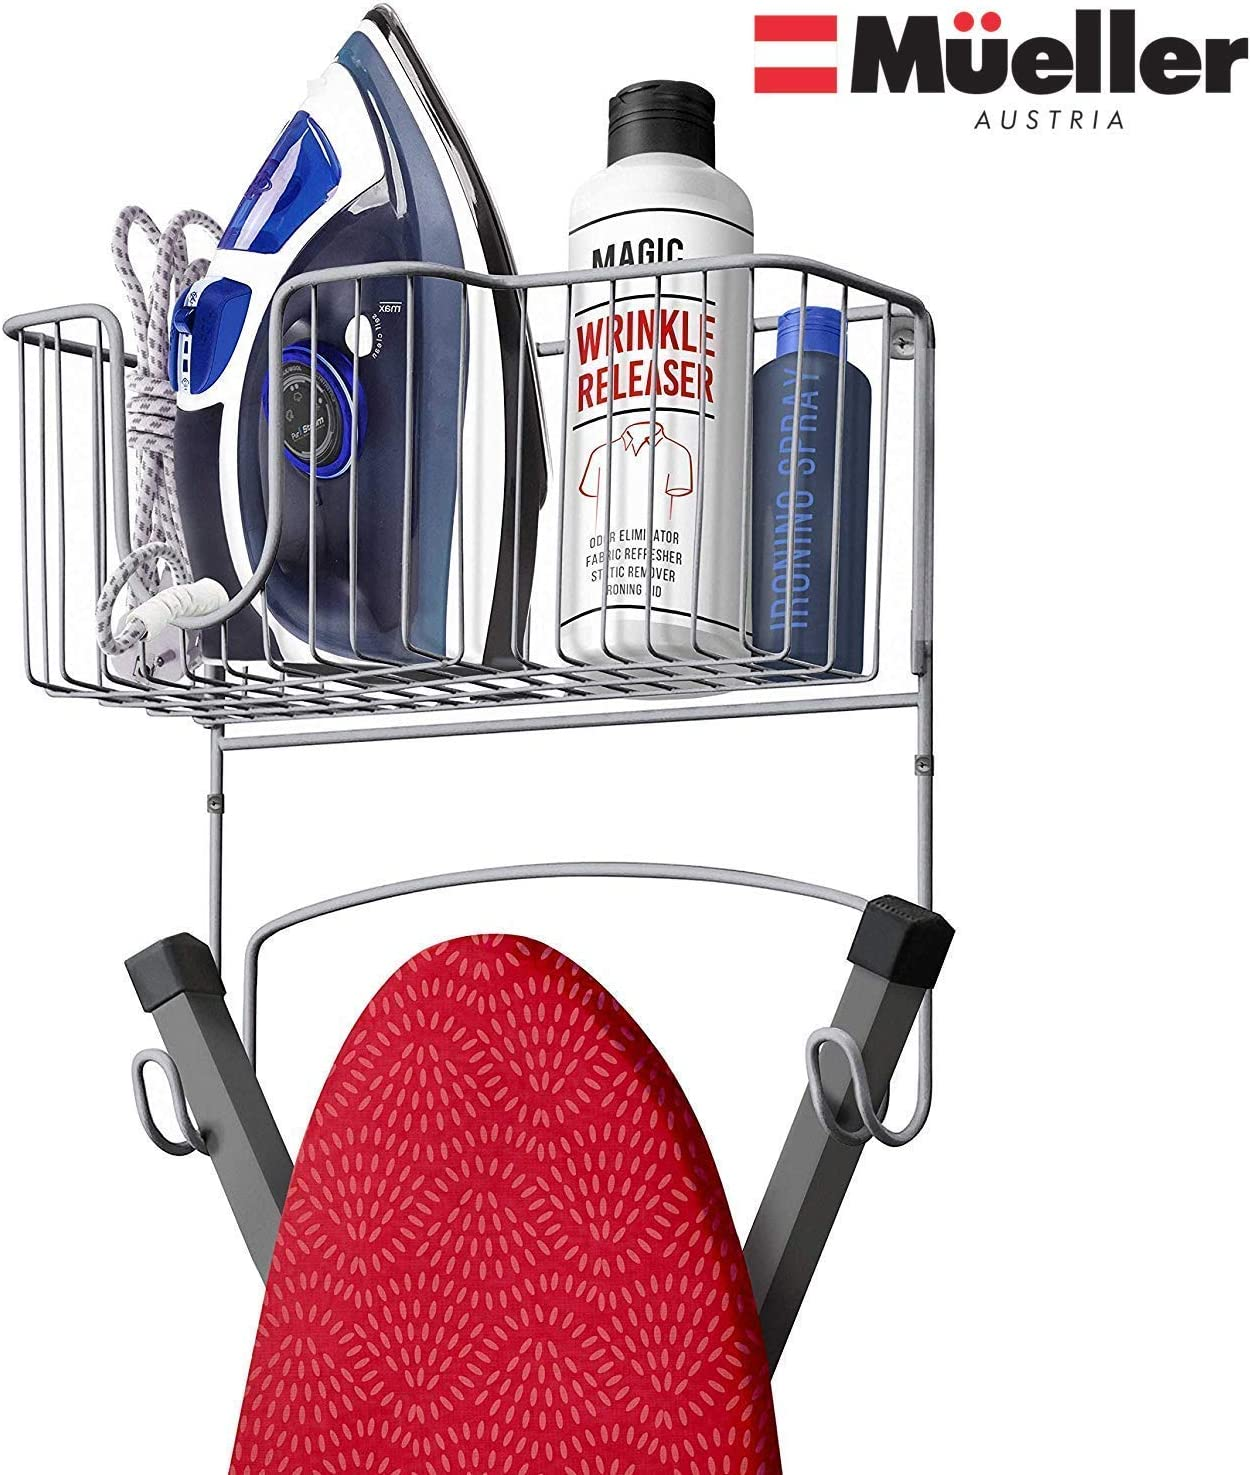 Mueller Ironing Board Hanger Wall Mount with Large Storage Basket and Hooks. Organizer for Laundry Rooms, Heat - Resistant, Holds Iron, Ironing Board and Spray Bottles